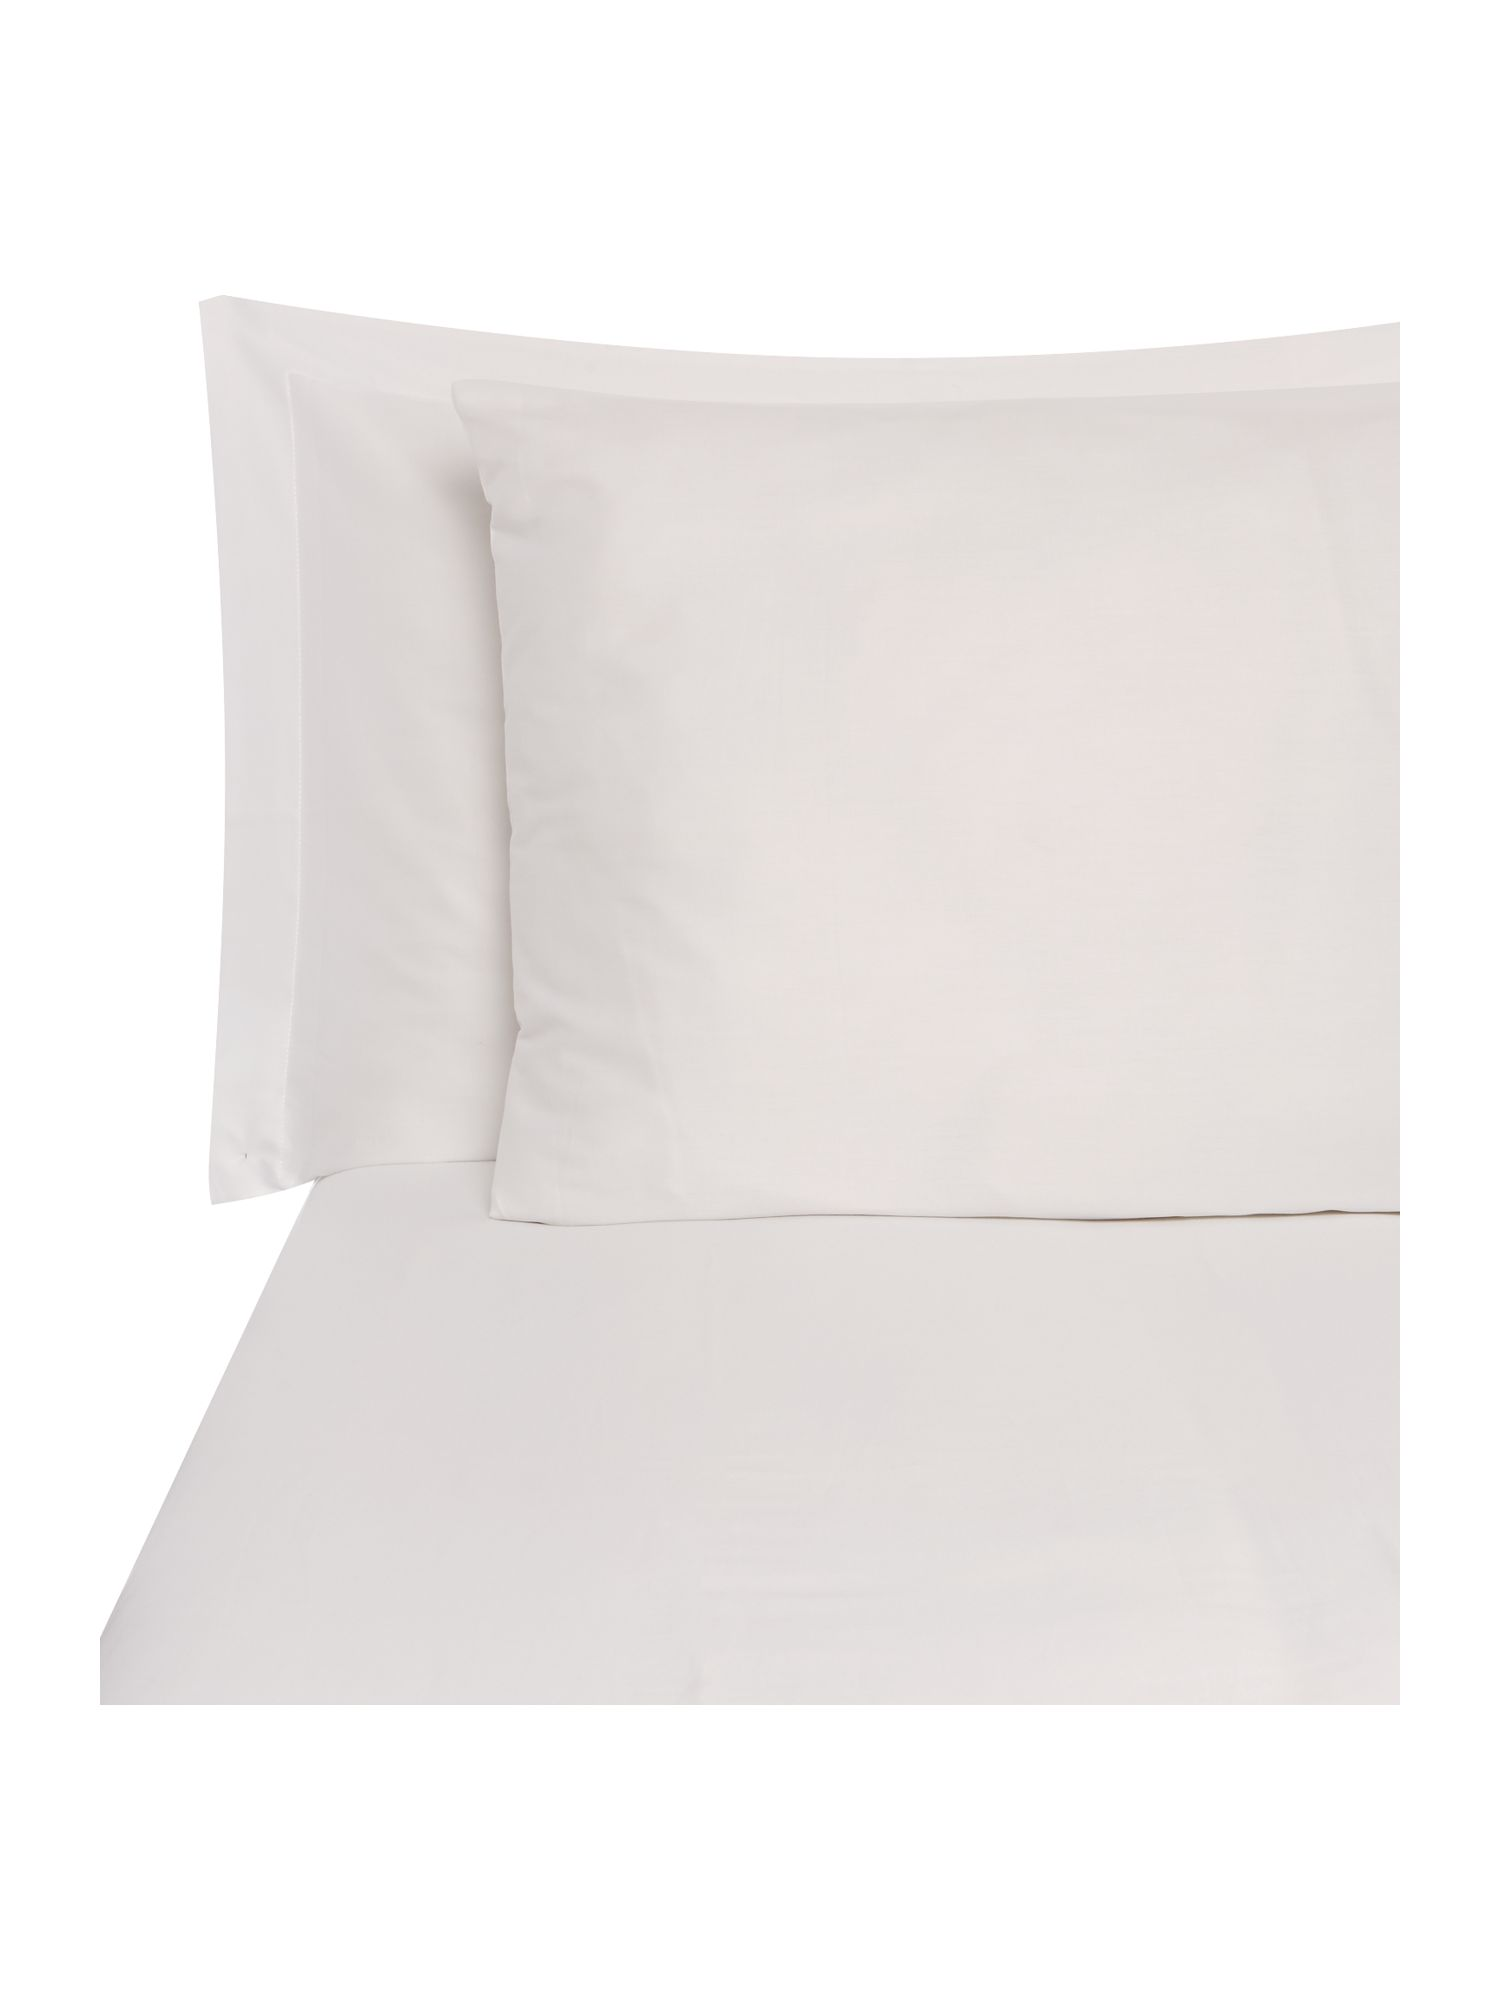 White flat sheet single